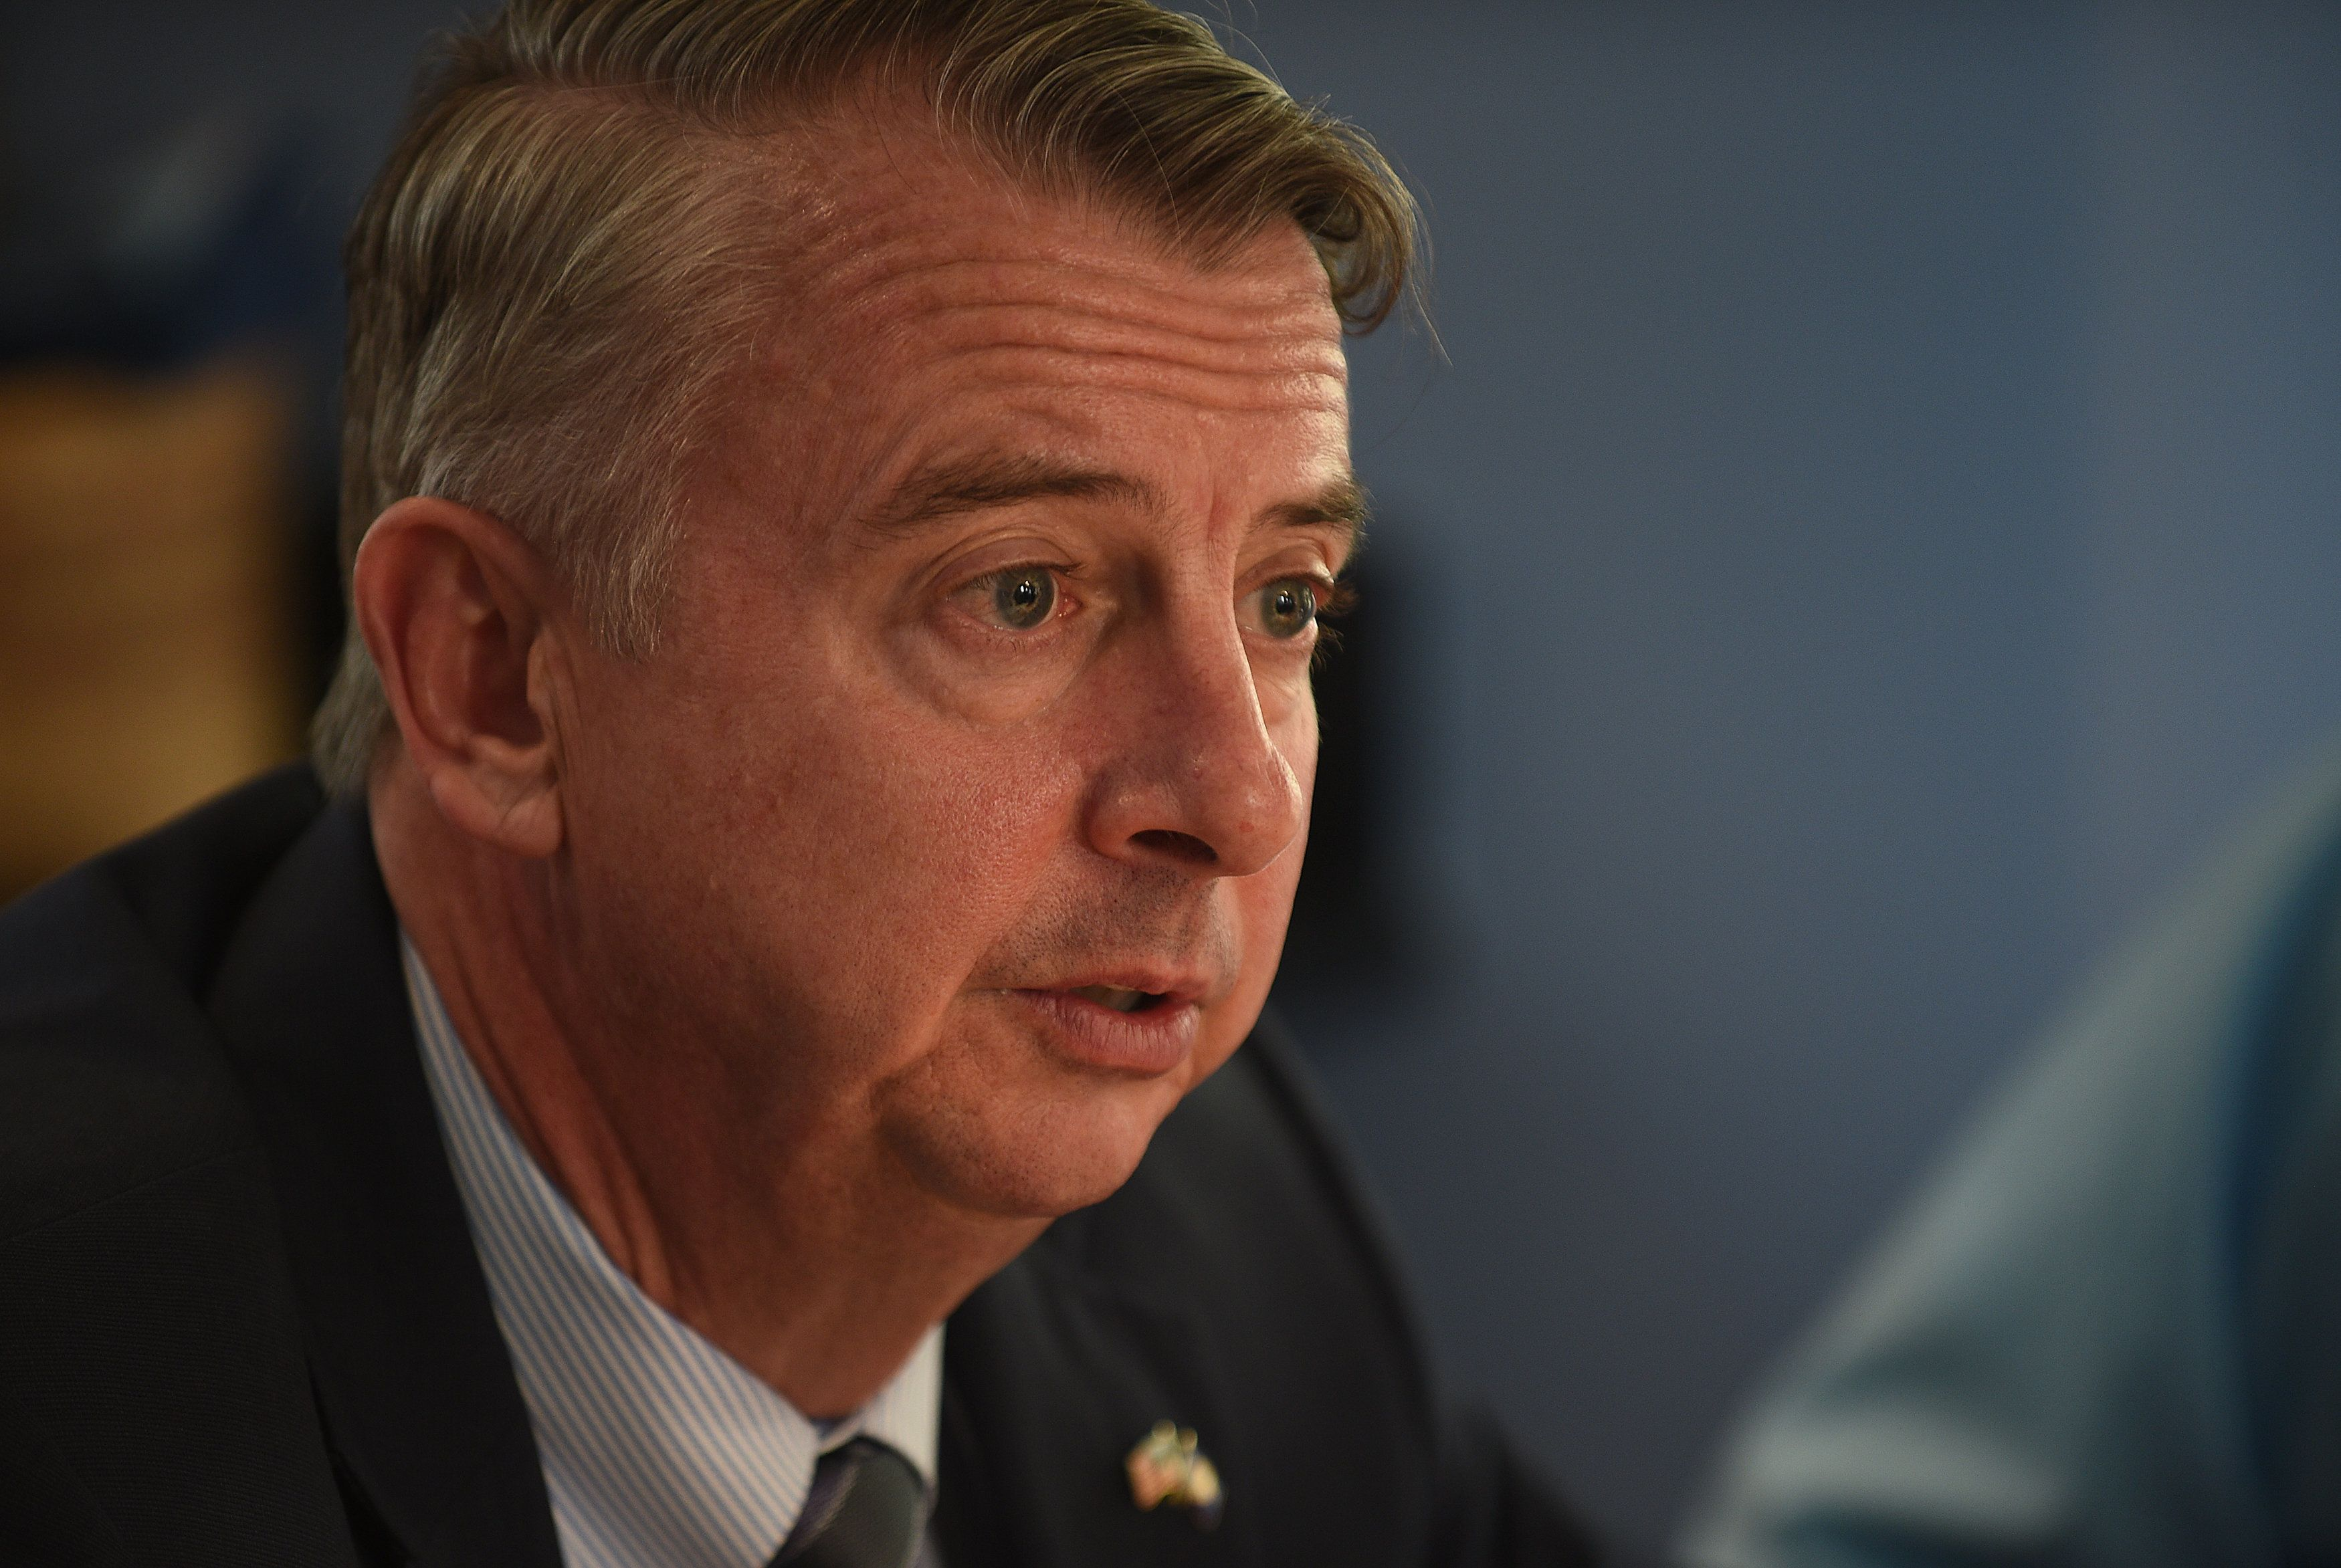 Ed Gillespie, the Republican candidate for Virginia governor, is revving up the populist rhetoric in his fight against his De